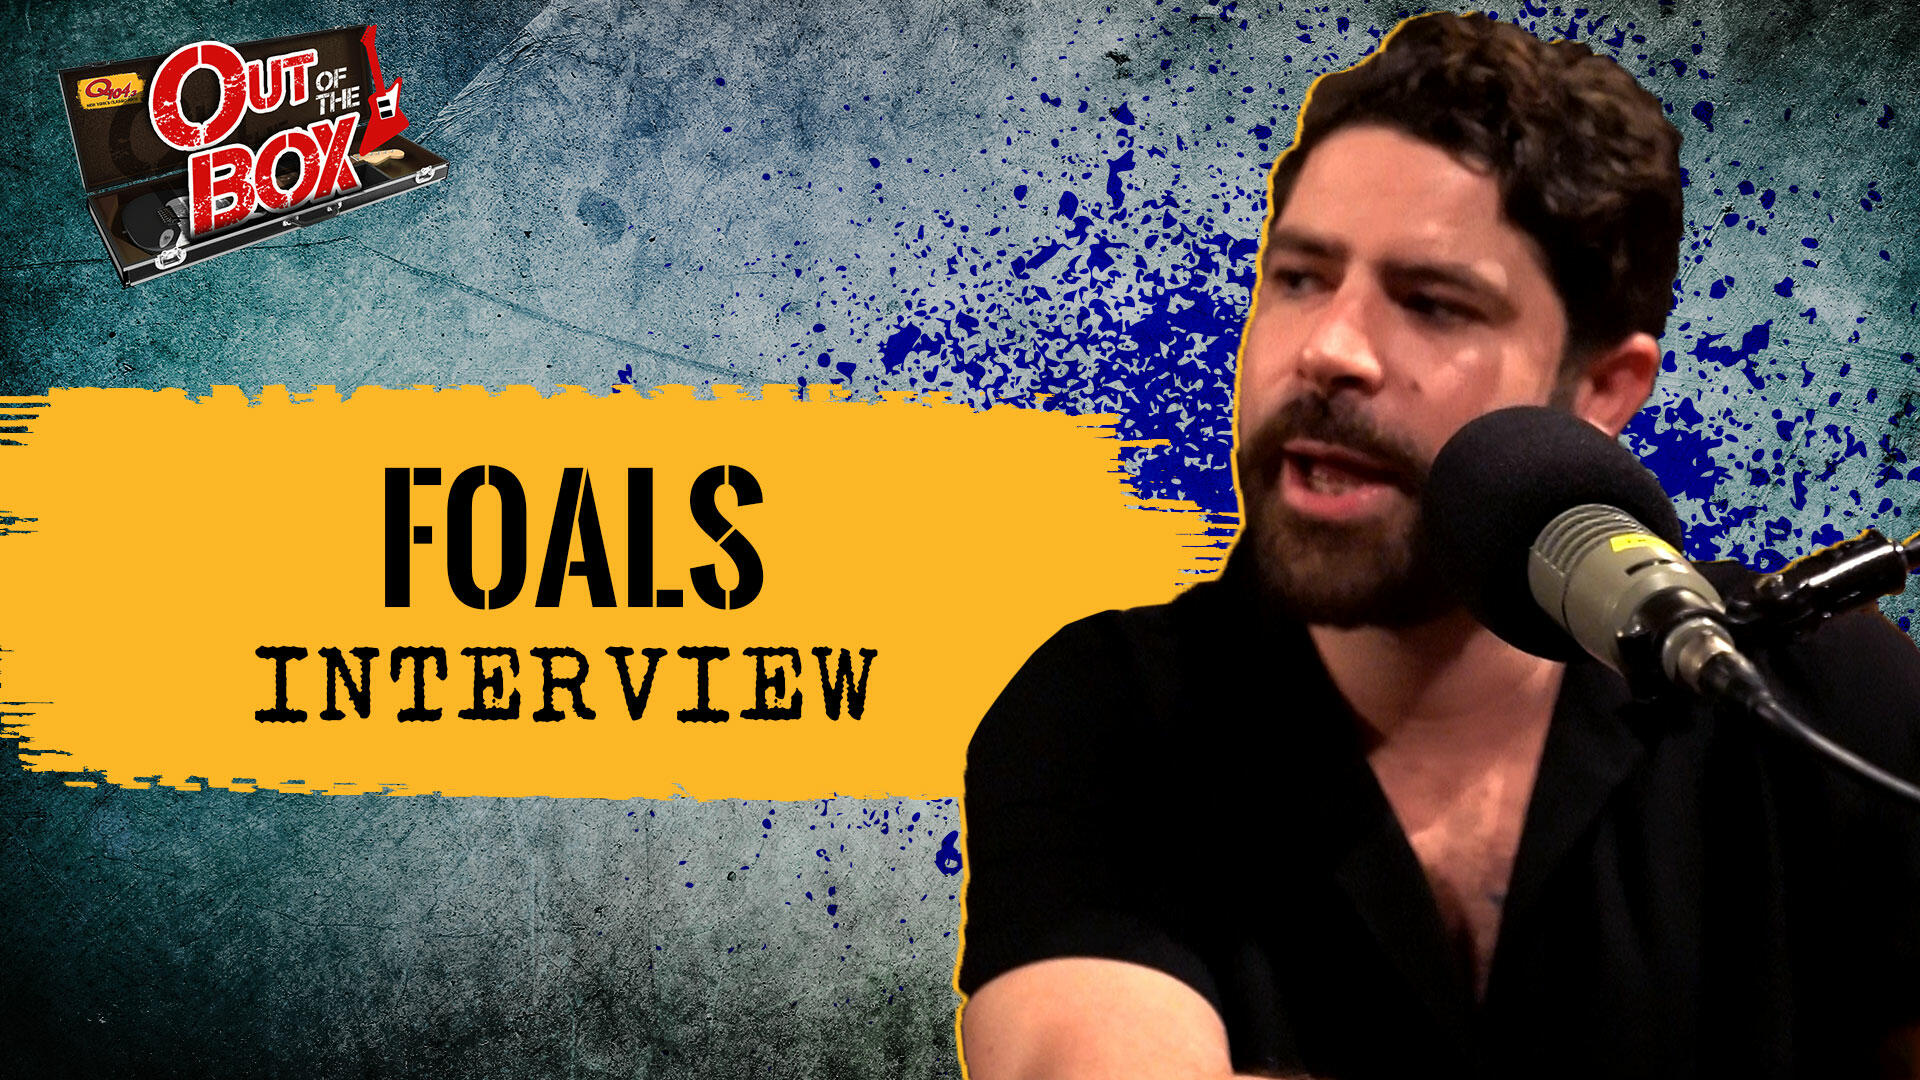 Foals Made A Double Album By Accident